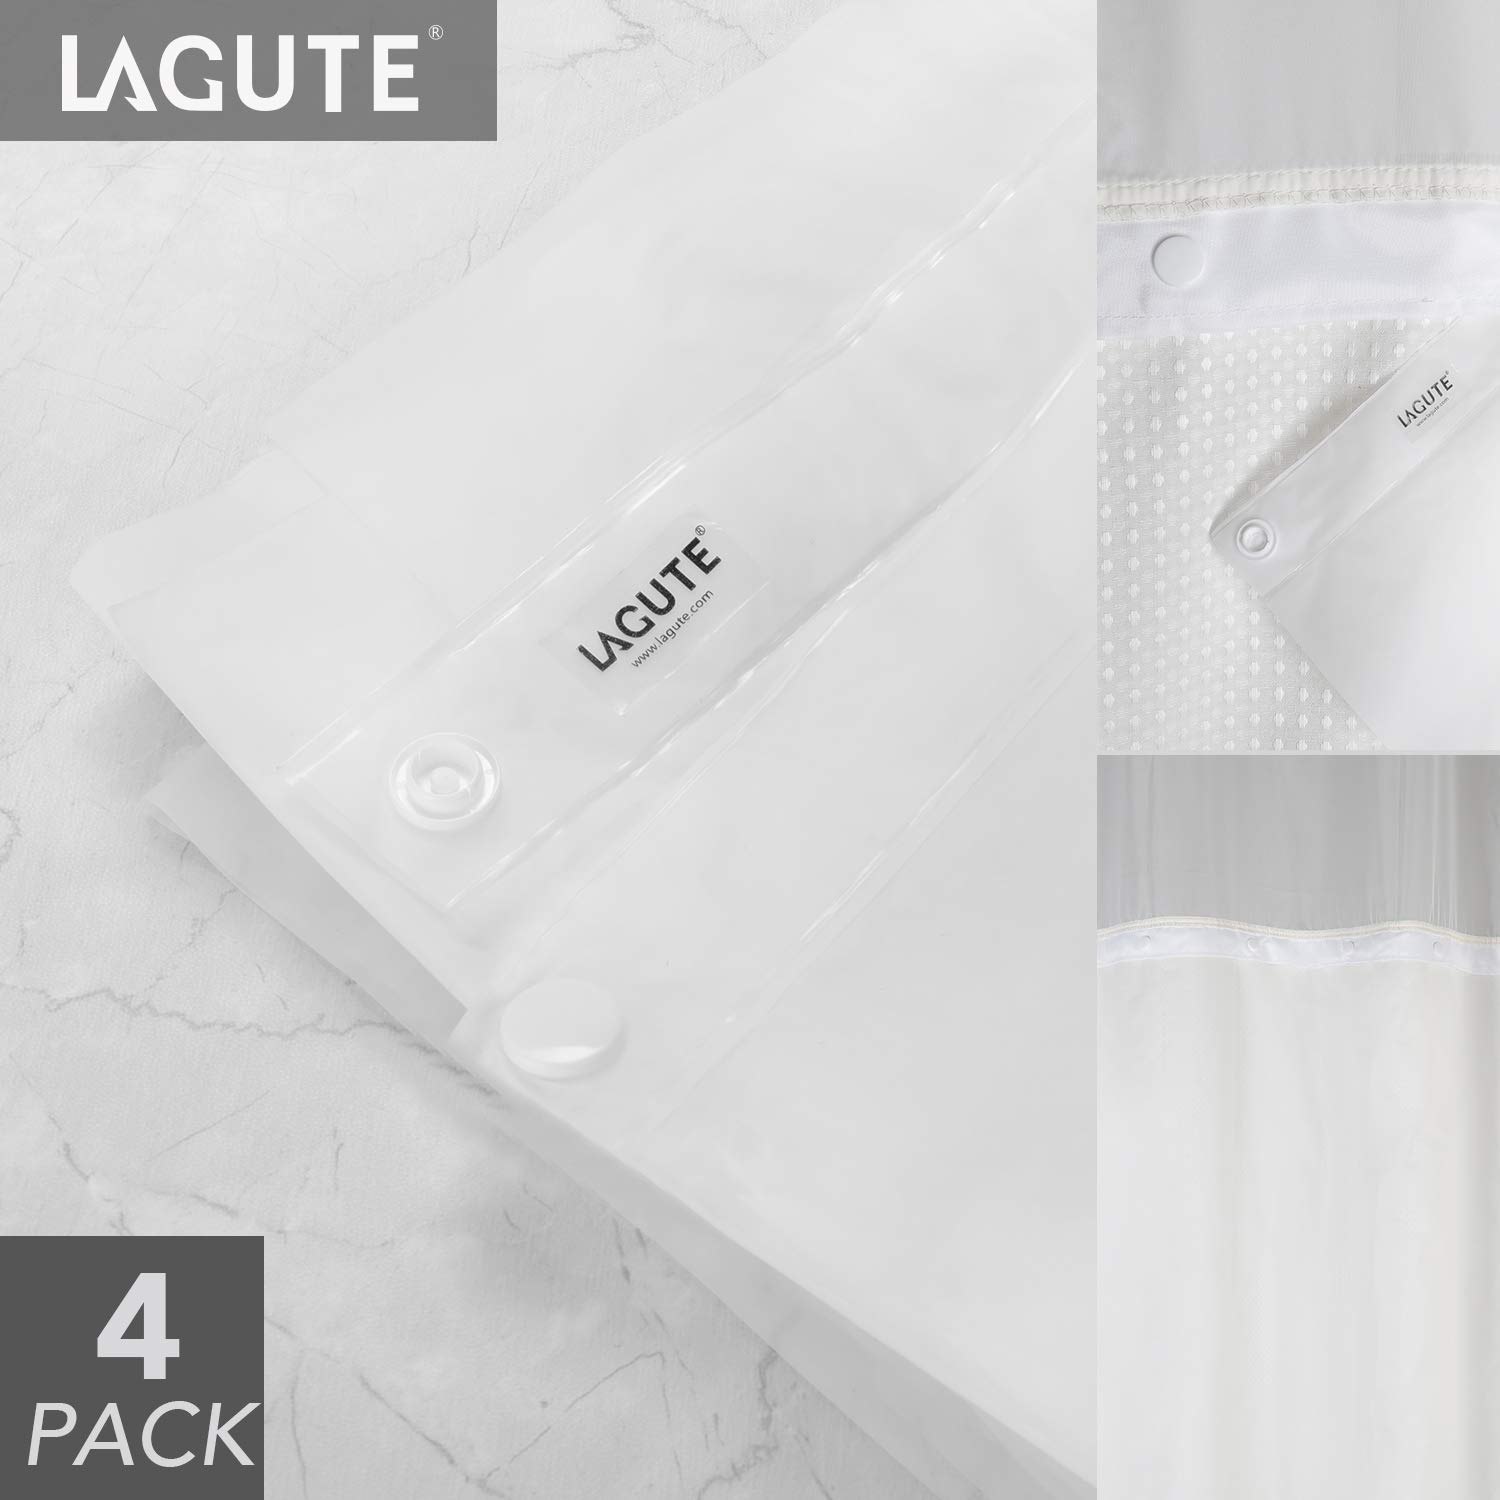 Lagute SnapHook Hookless Shower Curtain Replacement Snap-in Liner, Wipe Clean Machine Washable, Quick-Drying, No Chemical Odors, PEVA (4 Pack)